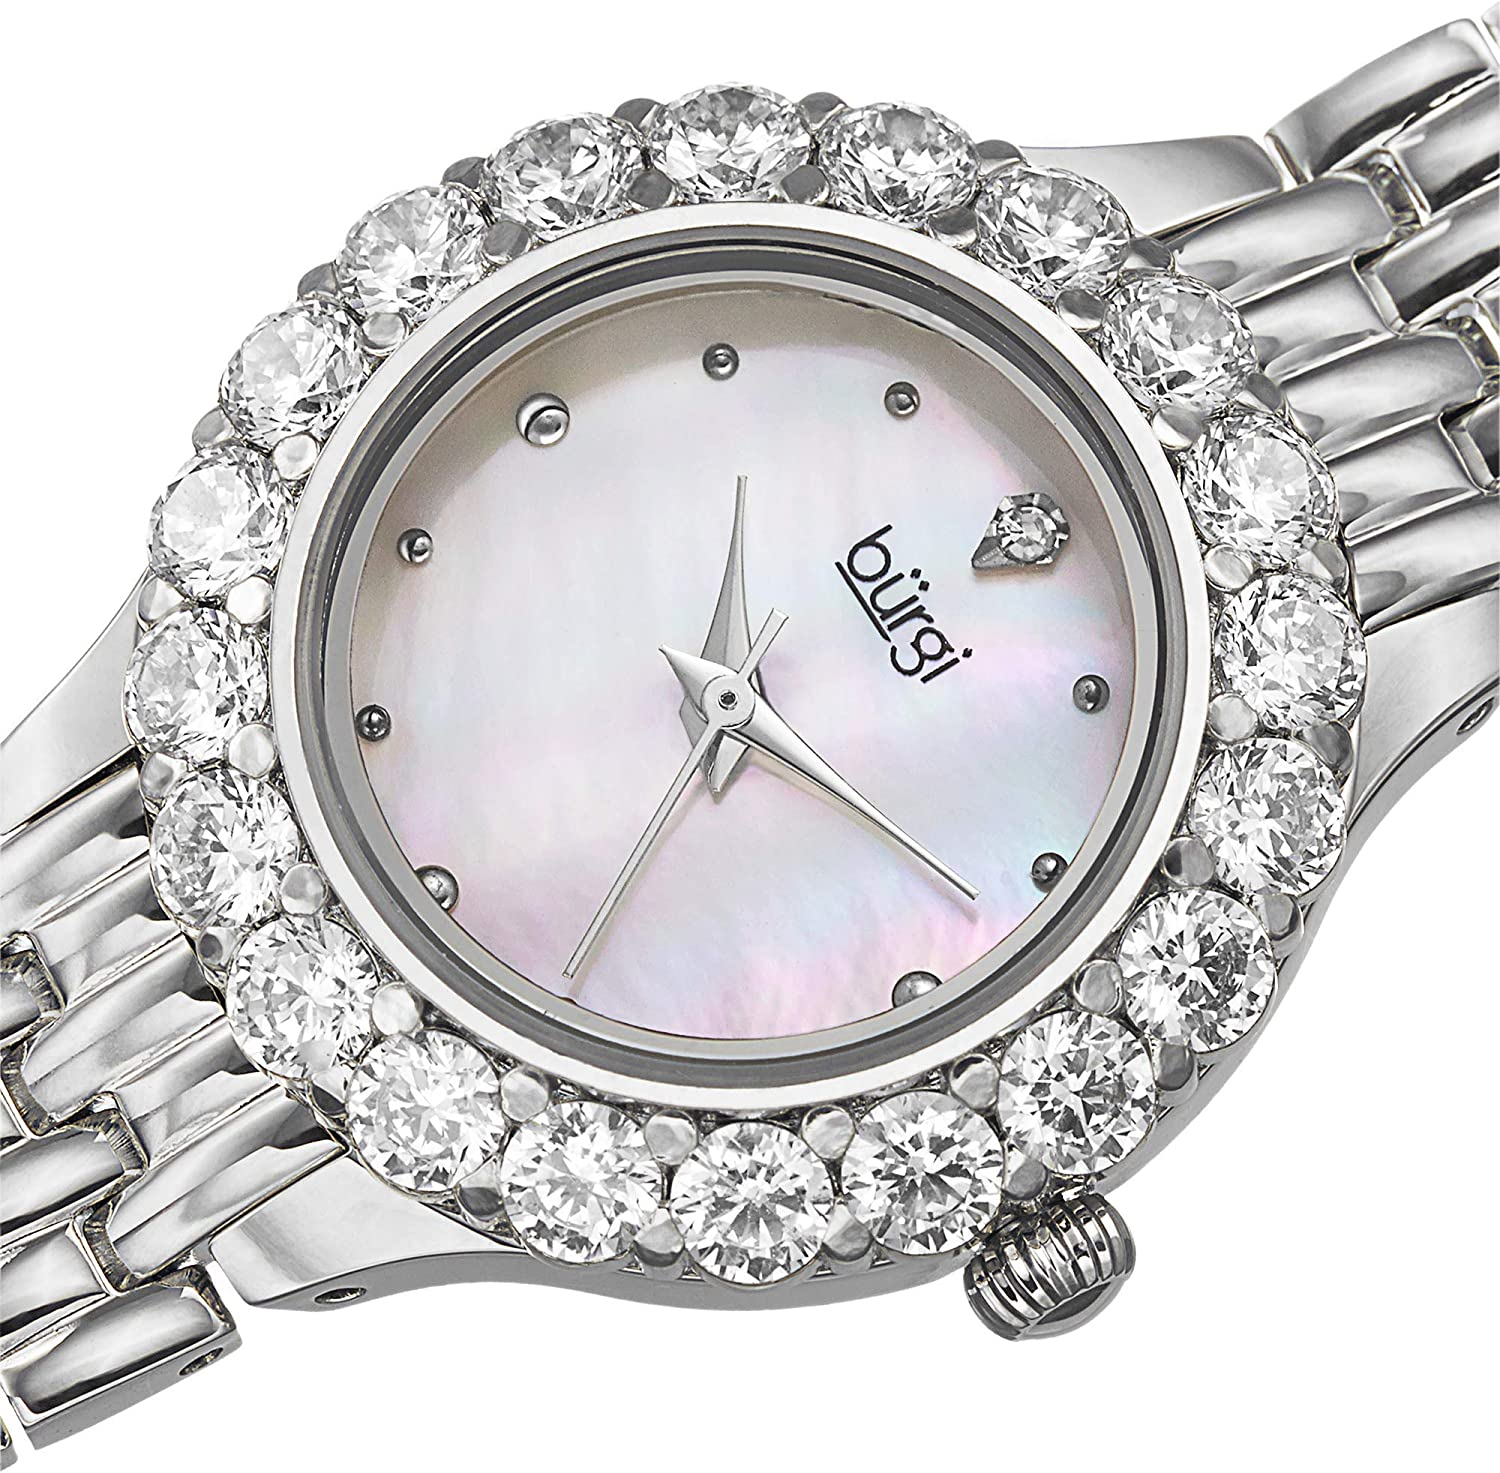 Burgi Women's Crystal Accented Watch - Mother of Pearl Dial Stainless Steel Bracelet - BUR107 Silver